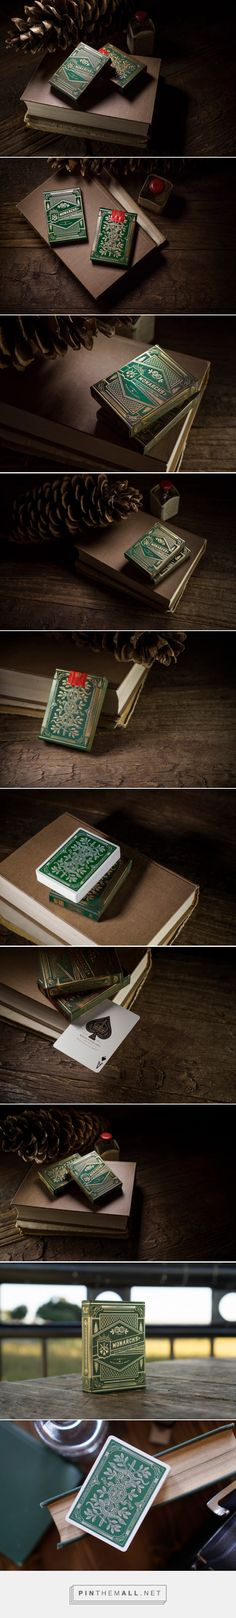 Monarch Playing Cards Green Edition Packaging by theory11 - http://www.packagingoftheworld.com/2015/10/monarch-playing-cards-green-edition.html